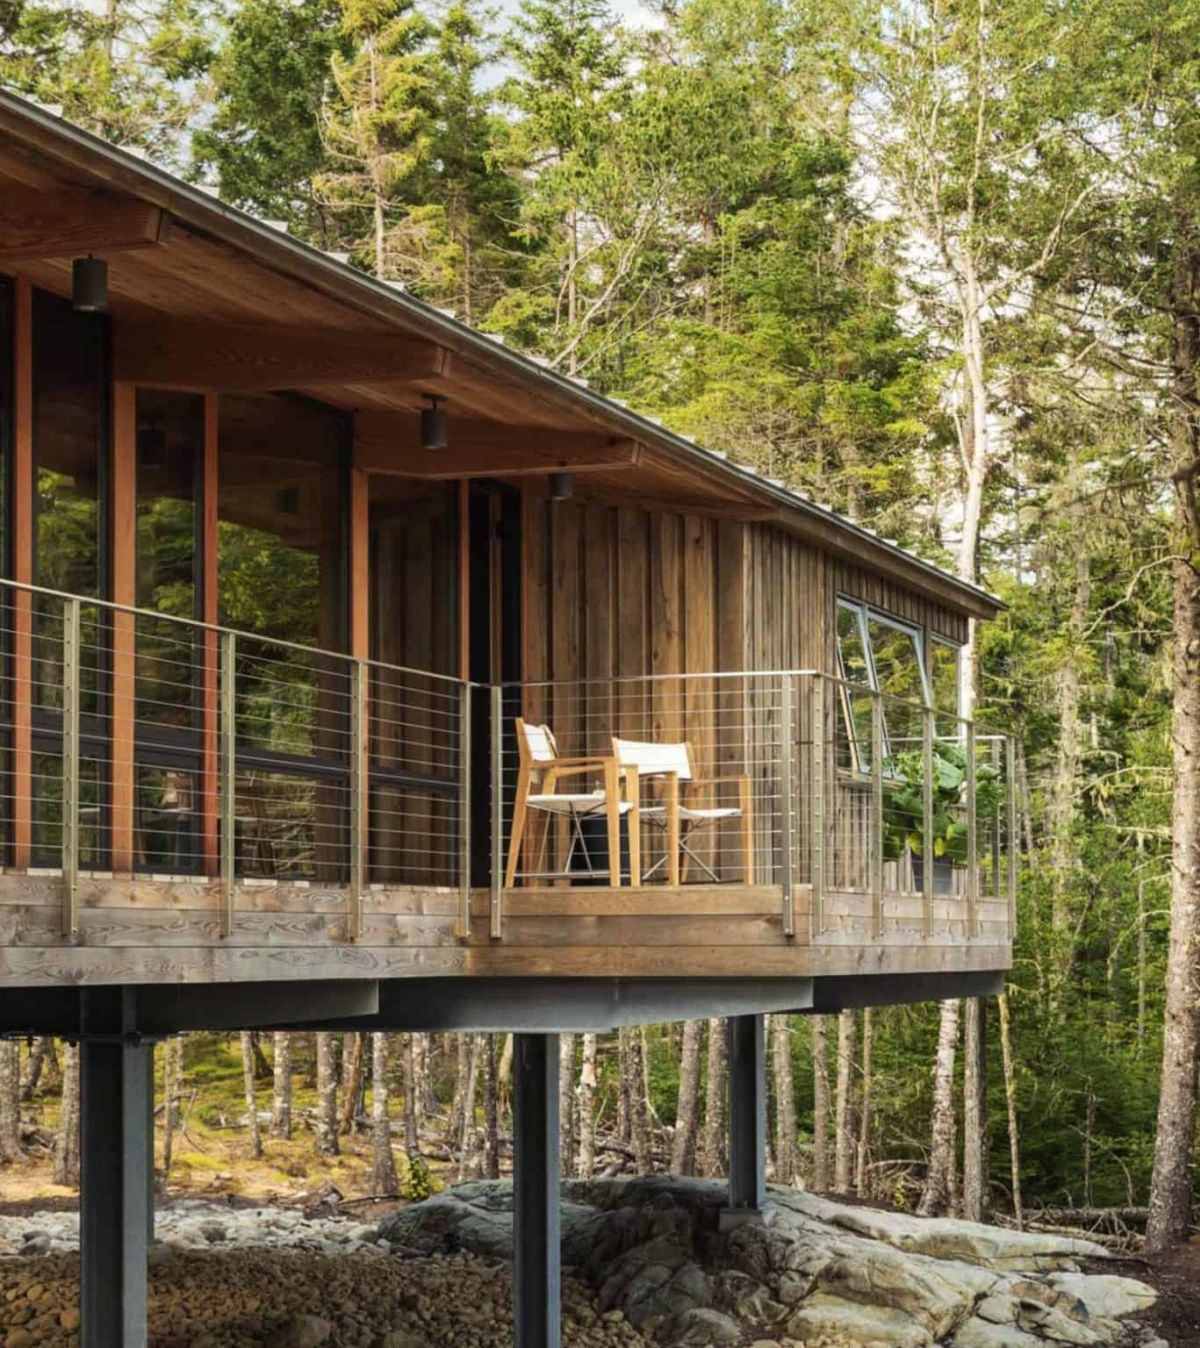 By raising the cabin on stilts, the architects allowed the area below to be preserved